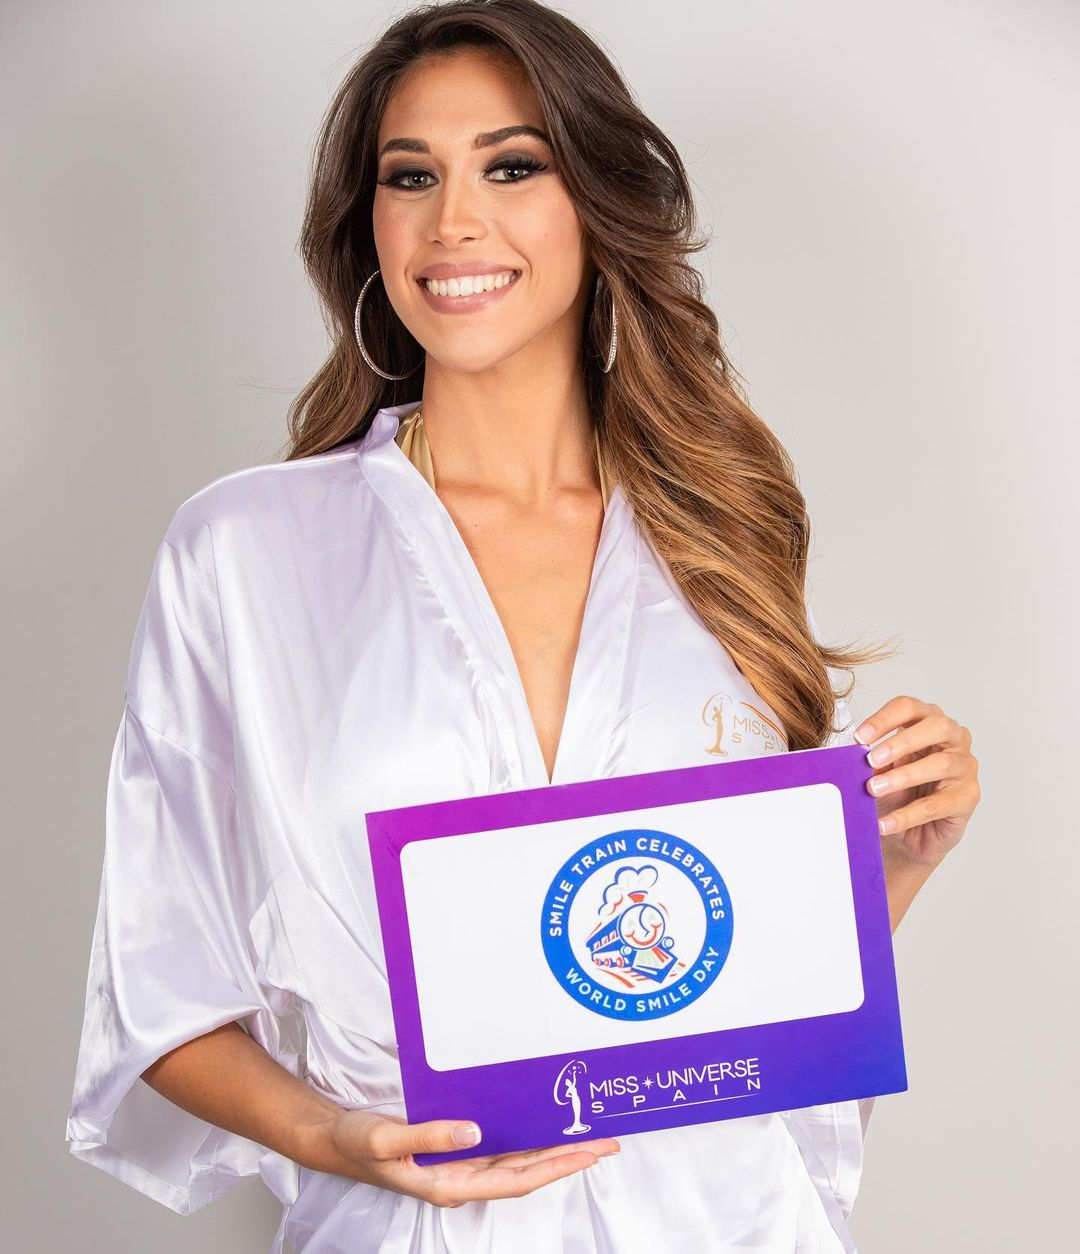 candidatas a miss universe spain 2020. final: 21 nov. - Página 4 So5sjvp2